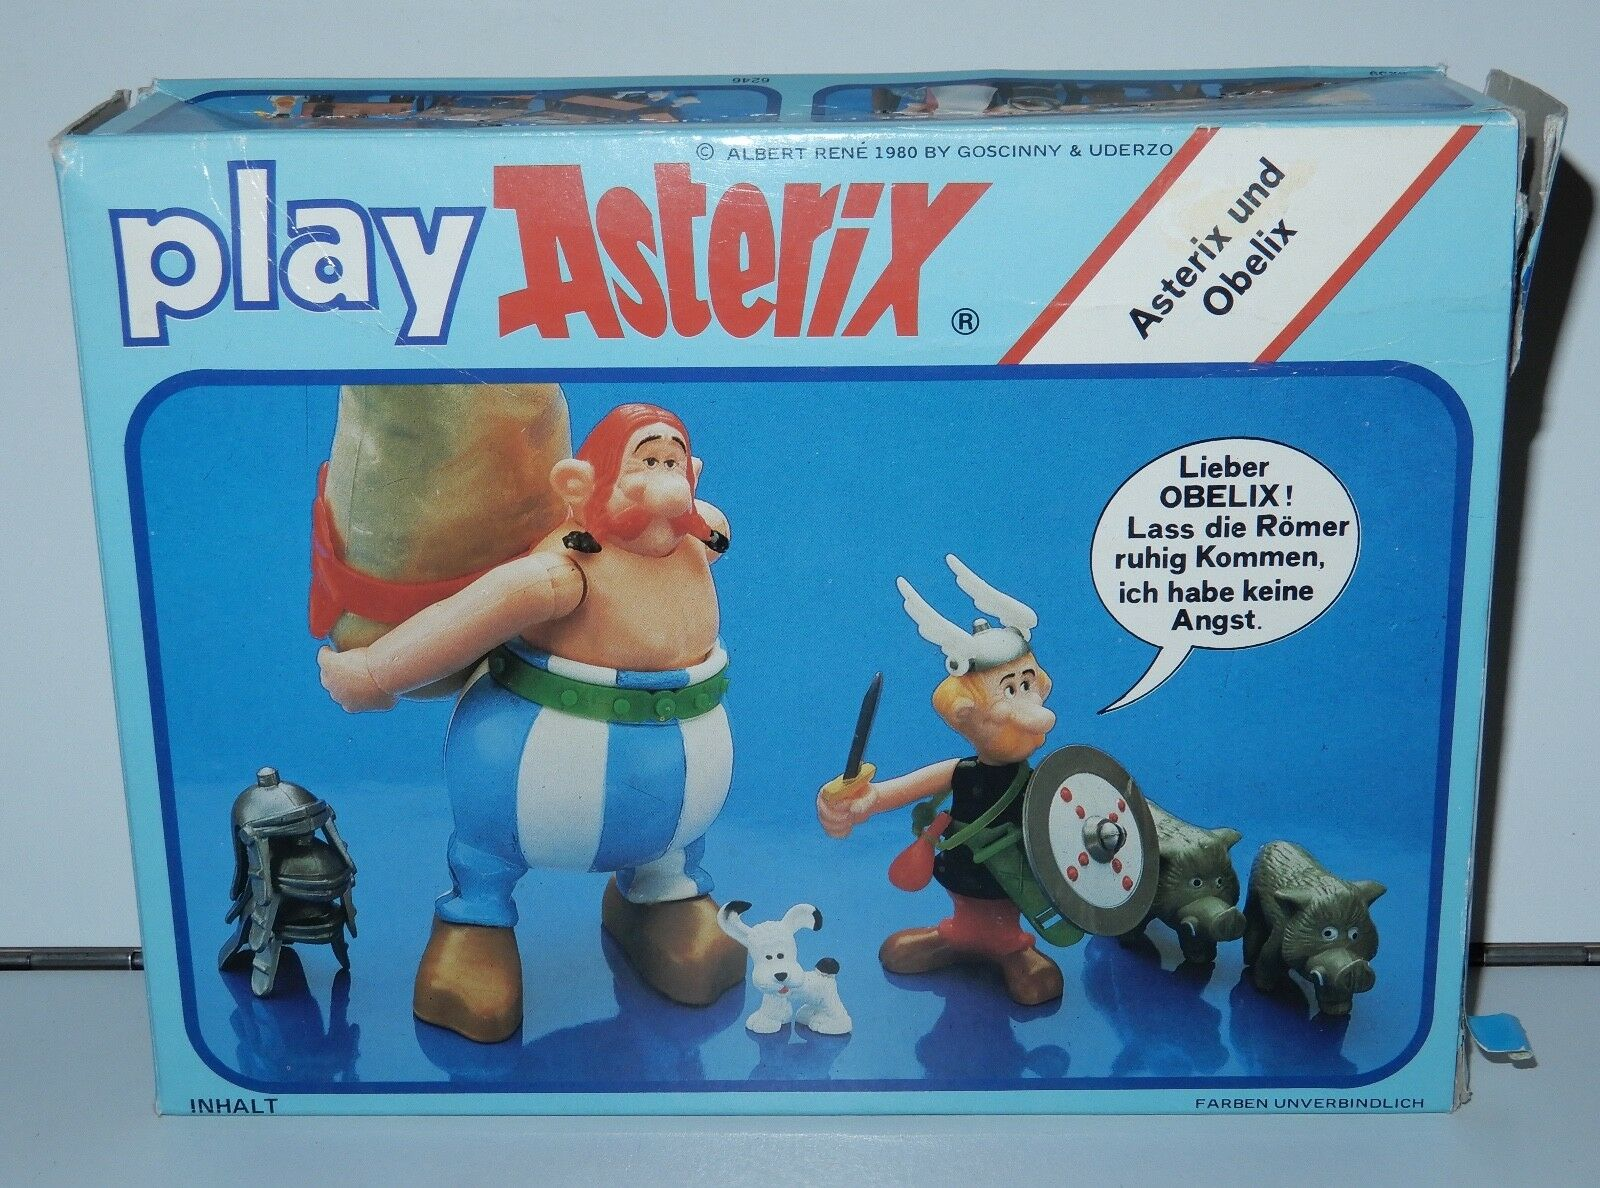 ASTERIX PLAY ACTION ACTION ACTION FIGURES 6240 ASTERIX & OBELIX 100% COMPLETE MIB 1980s CEJI ff4a4e